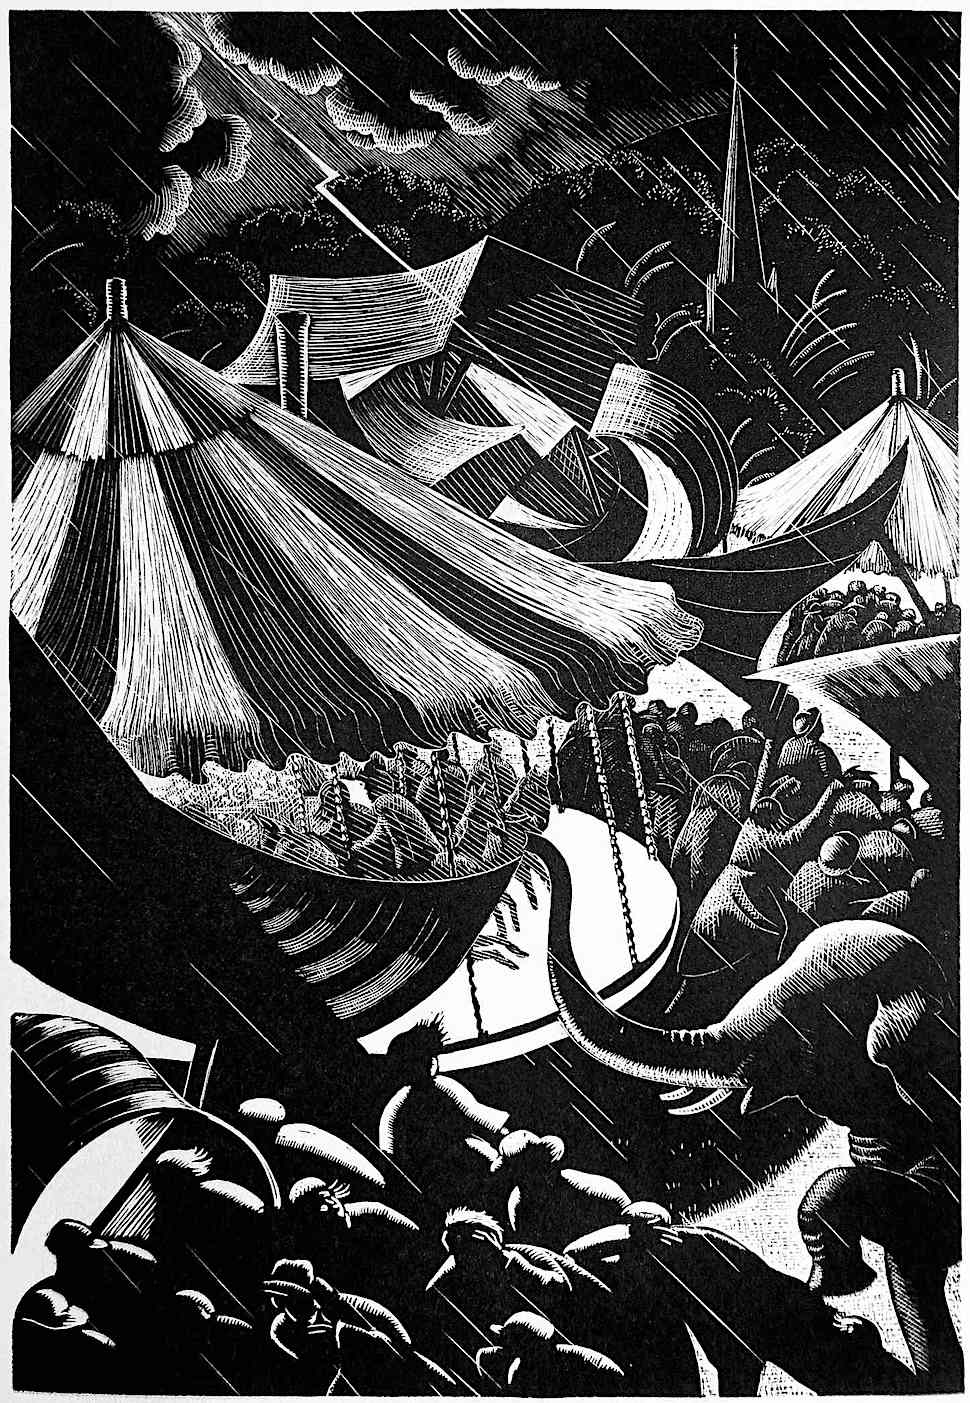 Clare Leighton 1937, a carnival caught in a storm